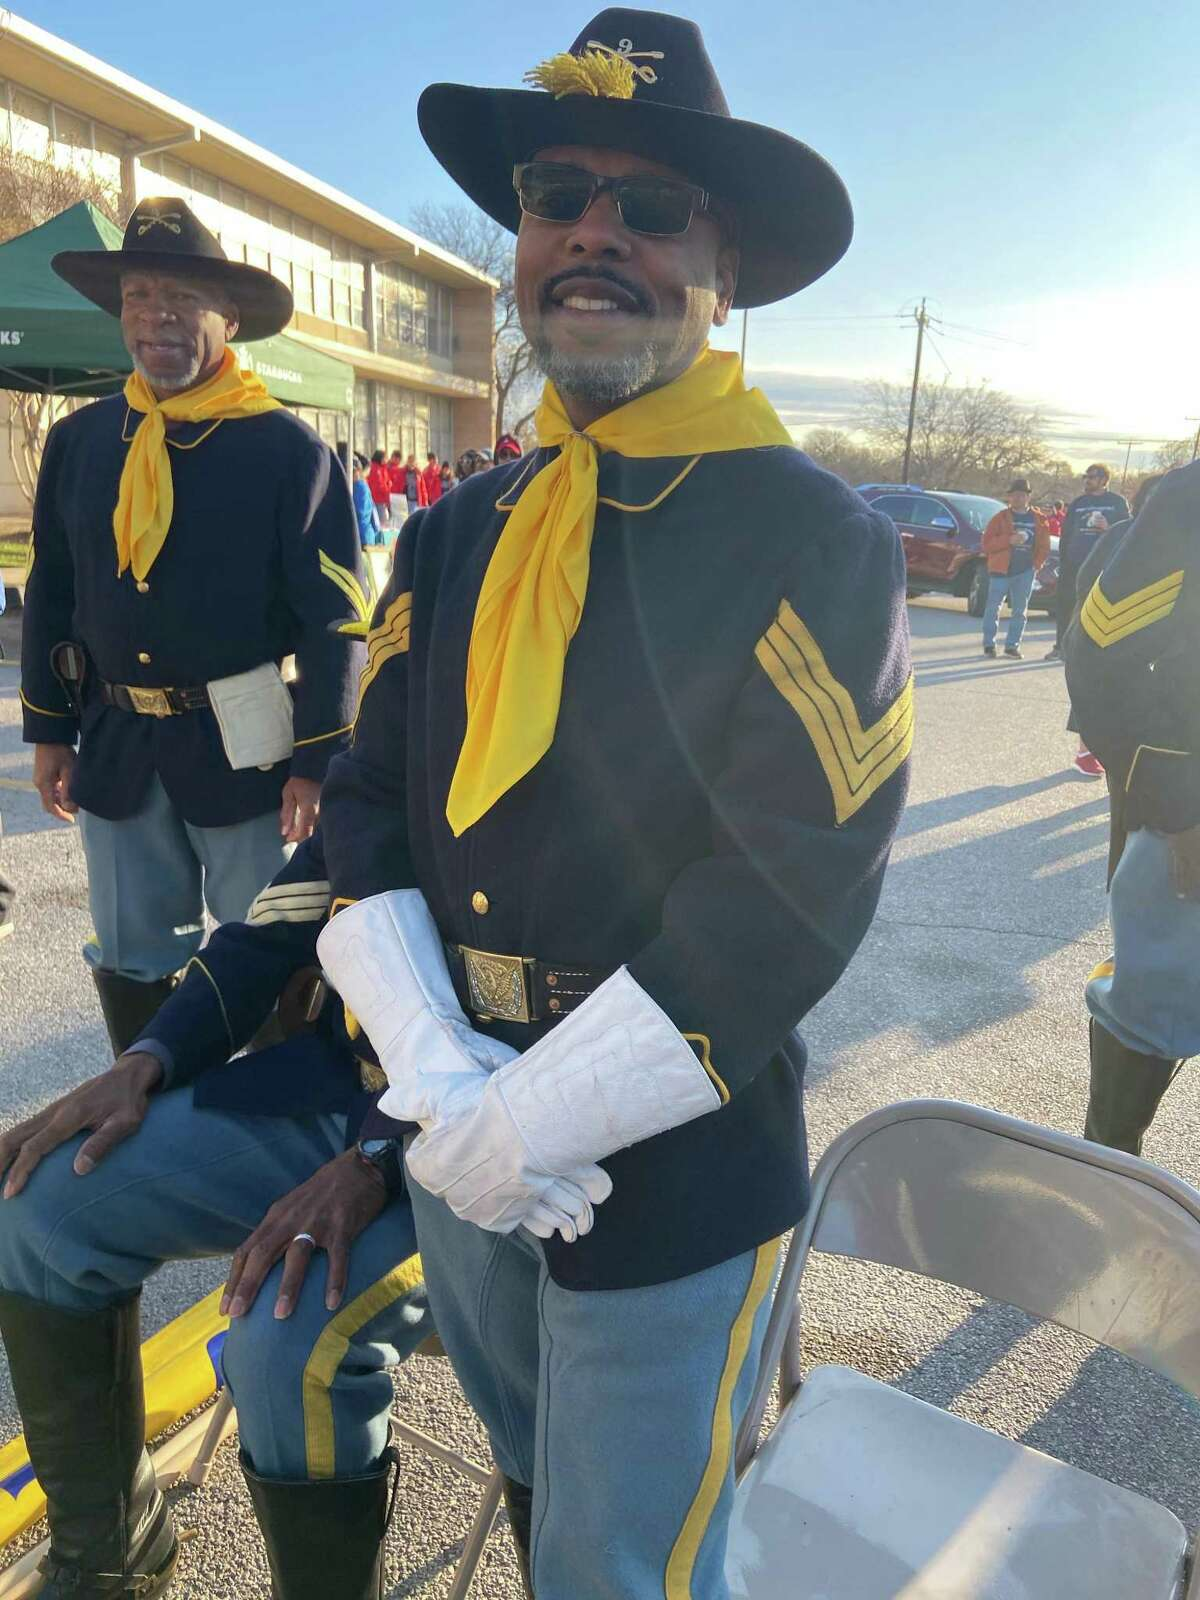 Michael Young, 54, a Buffalo Soldier reenactor who was born in Memphis but lives in San Antonio now, talks with visitors before the start of the 33rd Martin Luther King Jr. March on Monday in front of MLK Jr. Academy on MLK Jr. Drive.